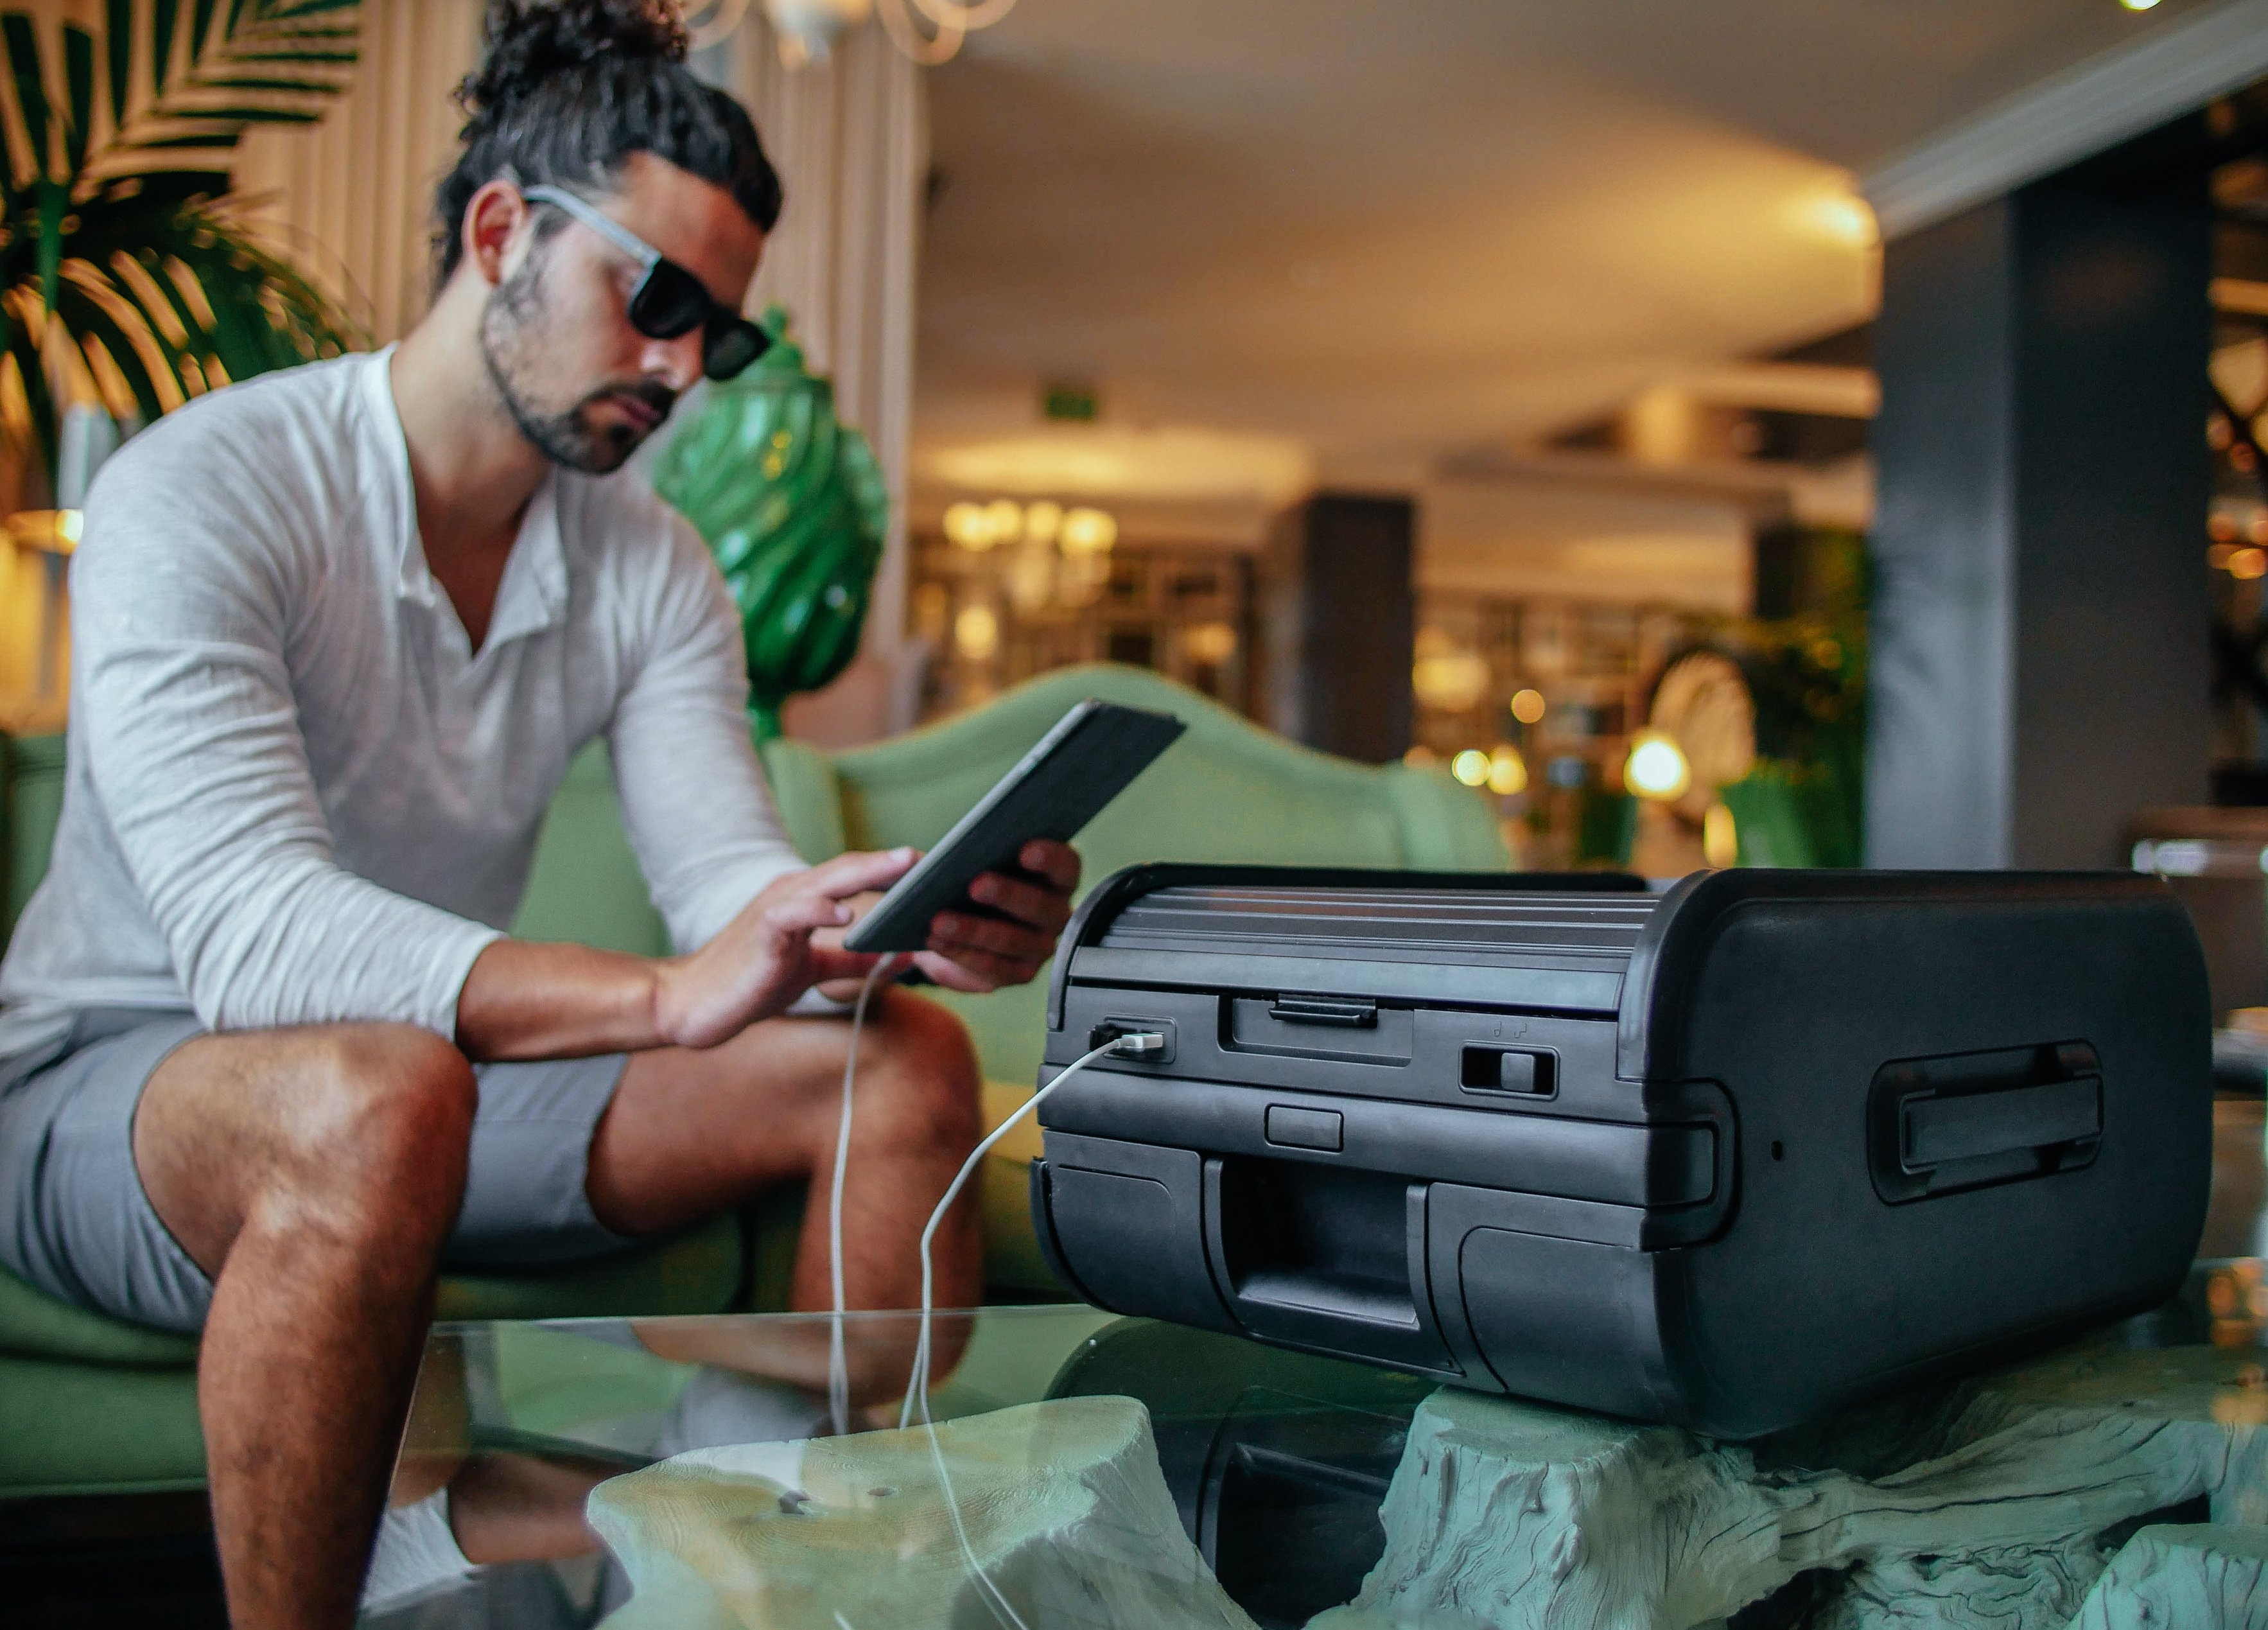 Trunkster Intelligent Zipperless Suitcase